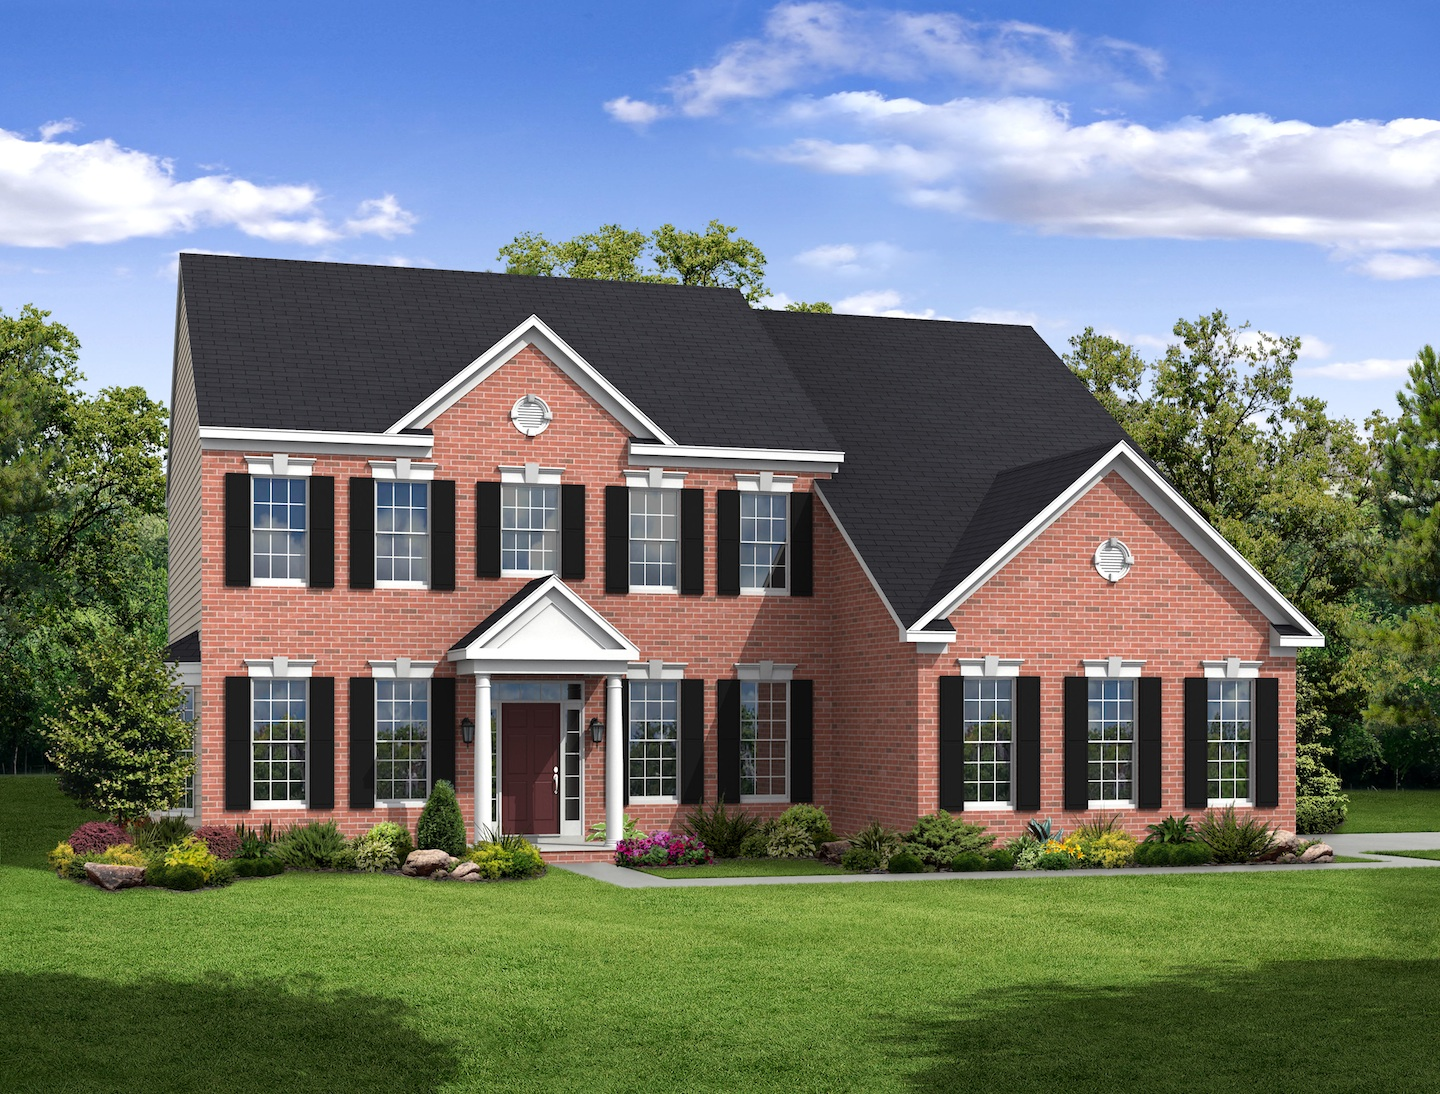 Single Family for Sale at Legacy Farms-The Wellington 452 Sullivan Road Westminster, 21157 United States